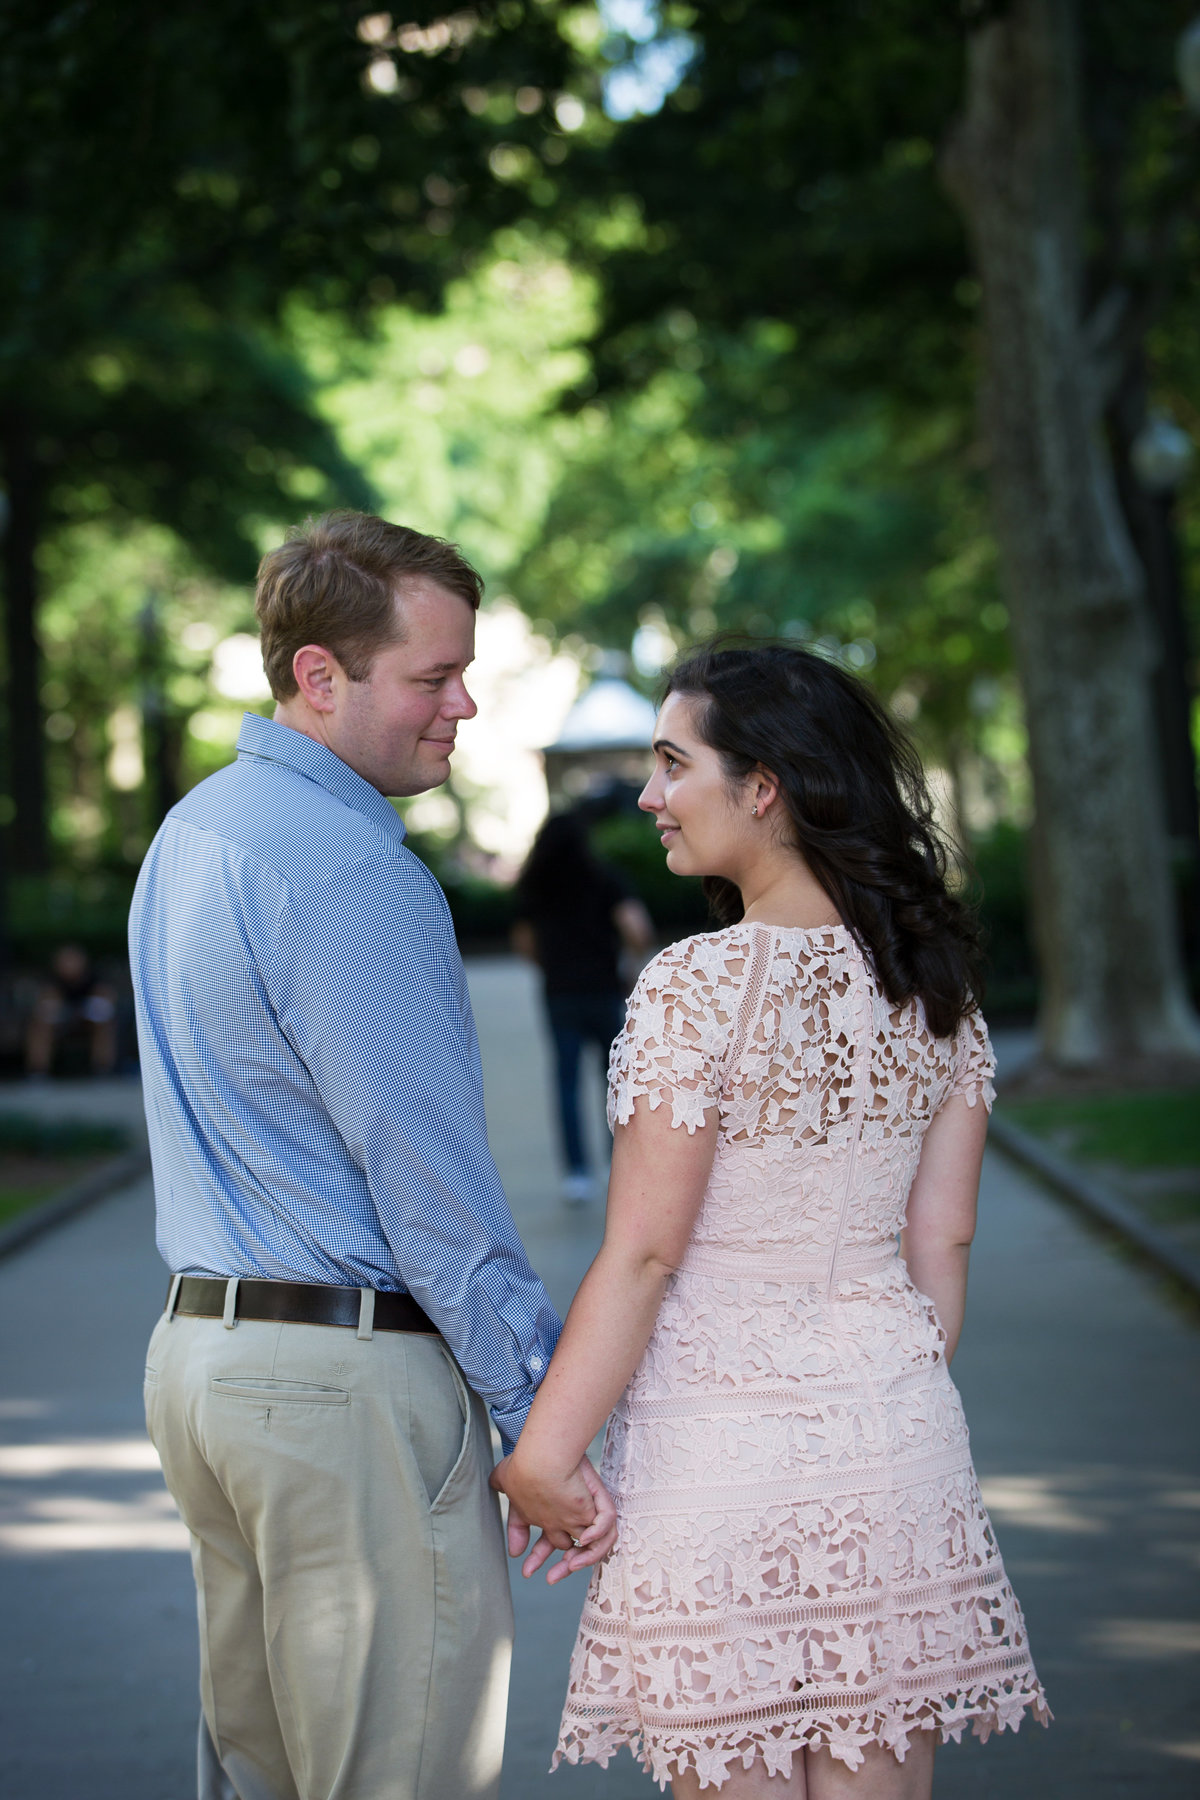 Rittenhouse-Square-Engagement-Mariya-Stecklair-Photography-91